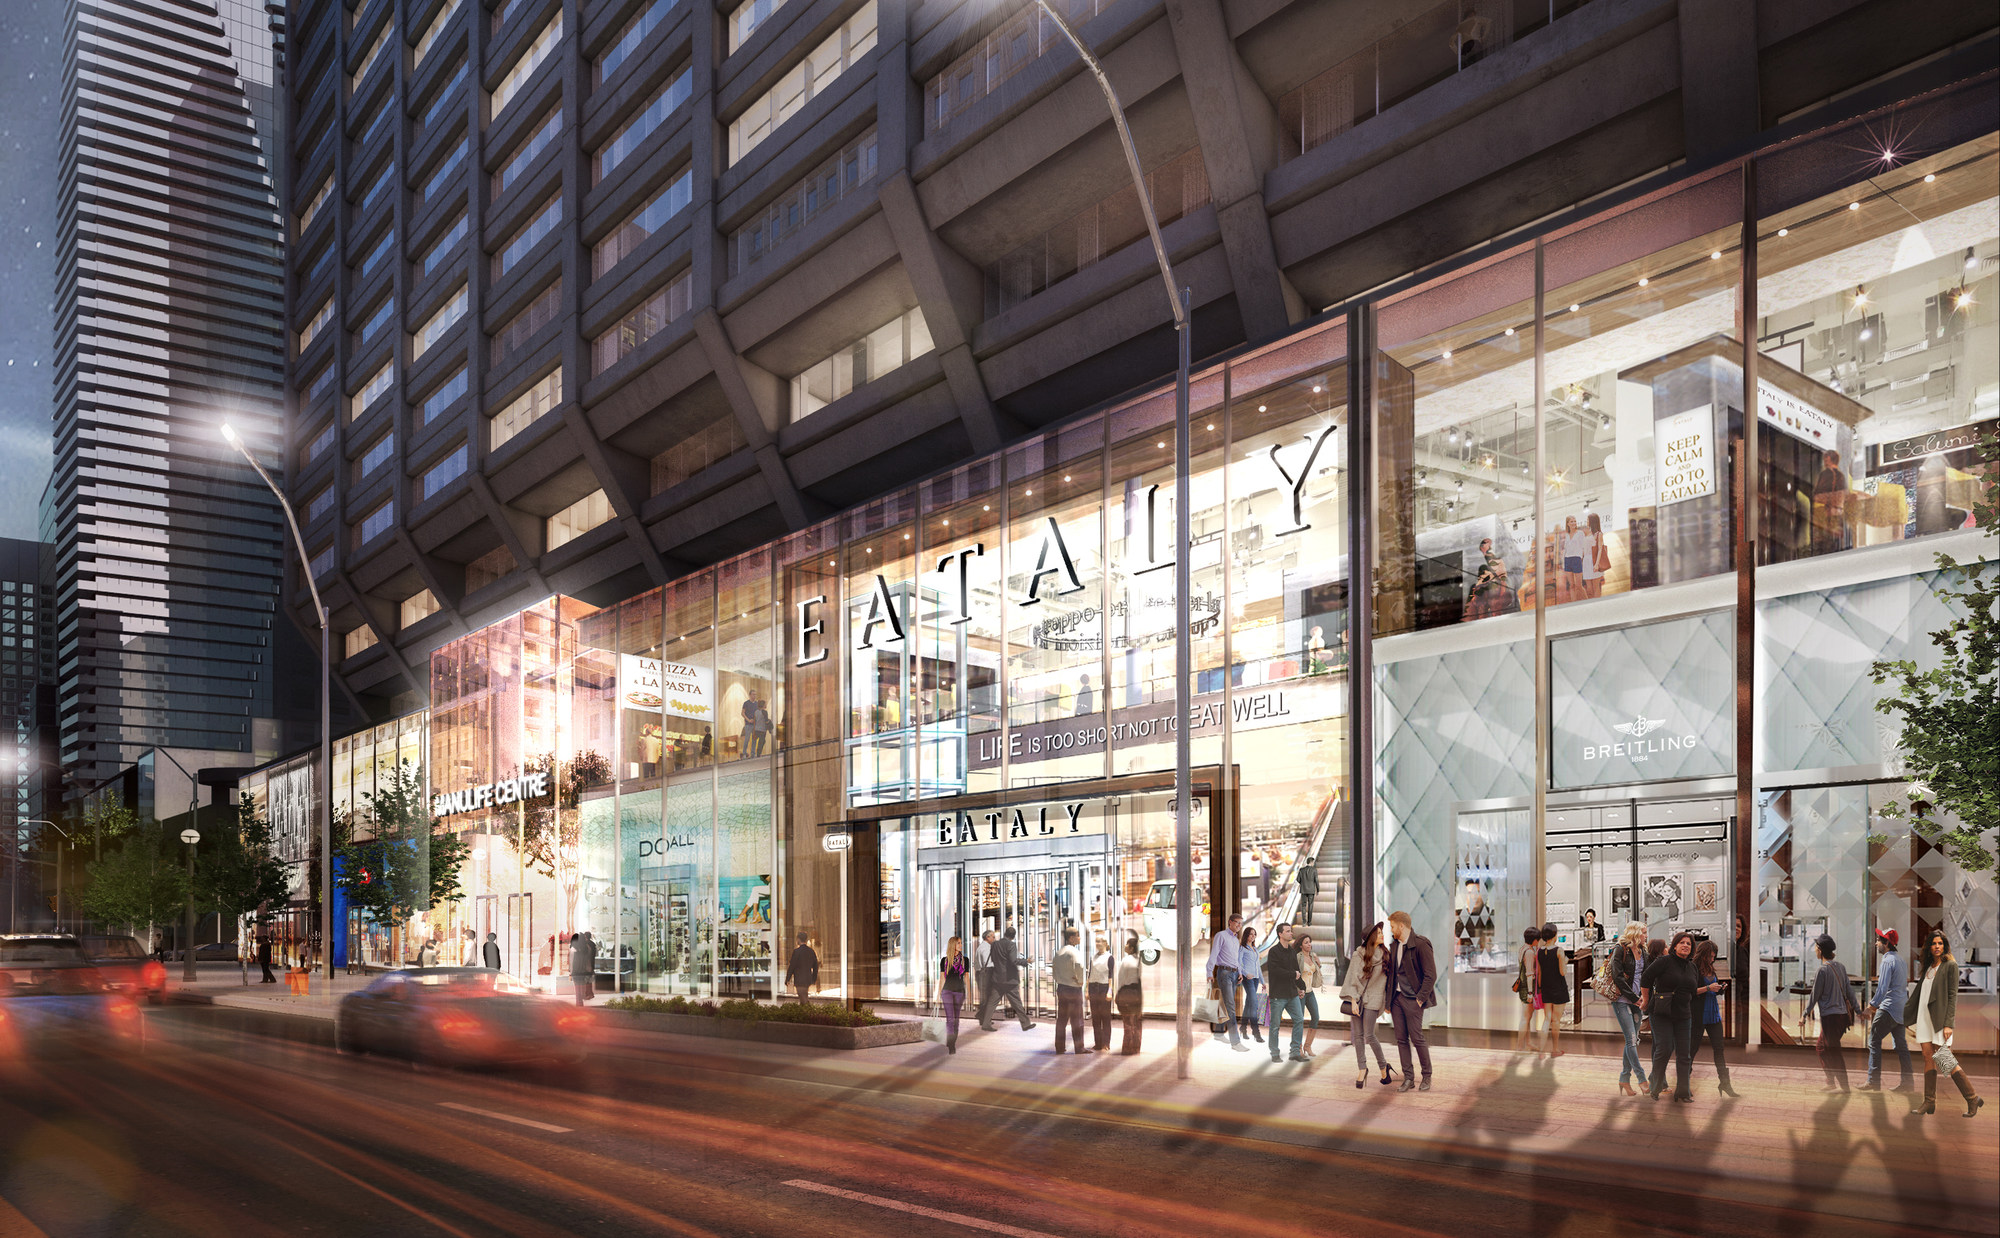 Eataly frontage on Bloor at the newly renovated Manulife Centre (CNW Group/Eataly)